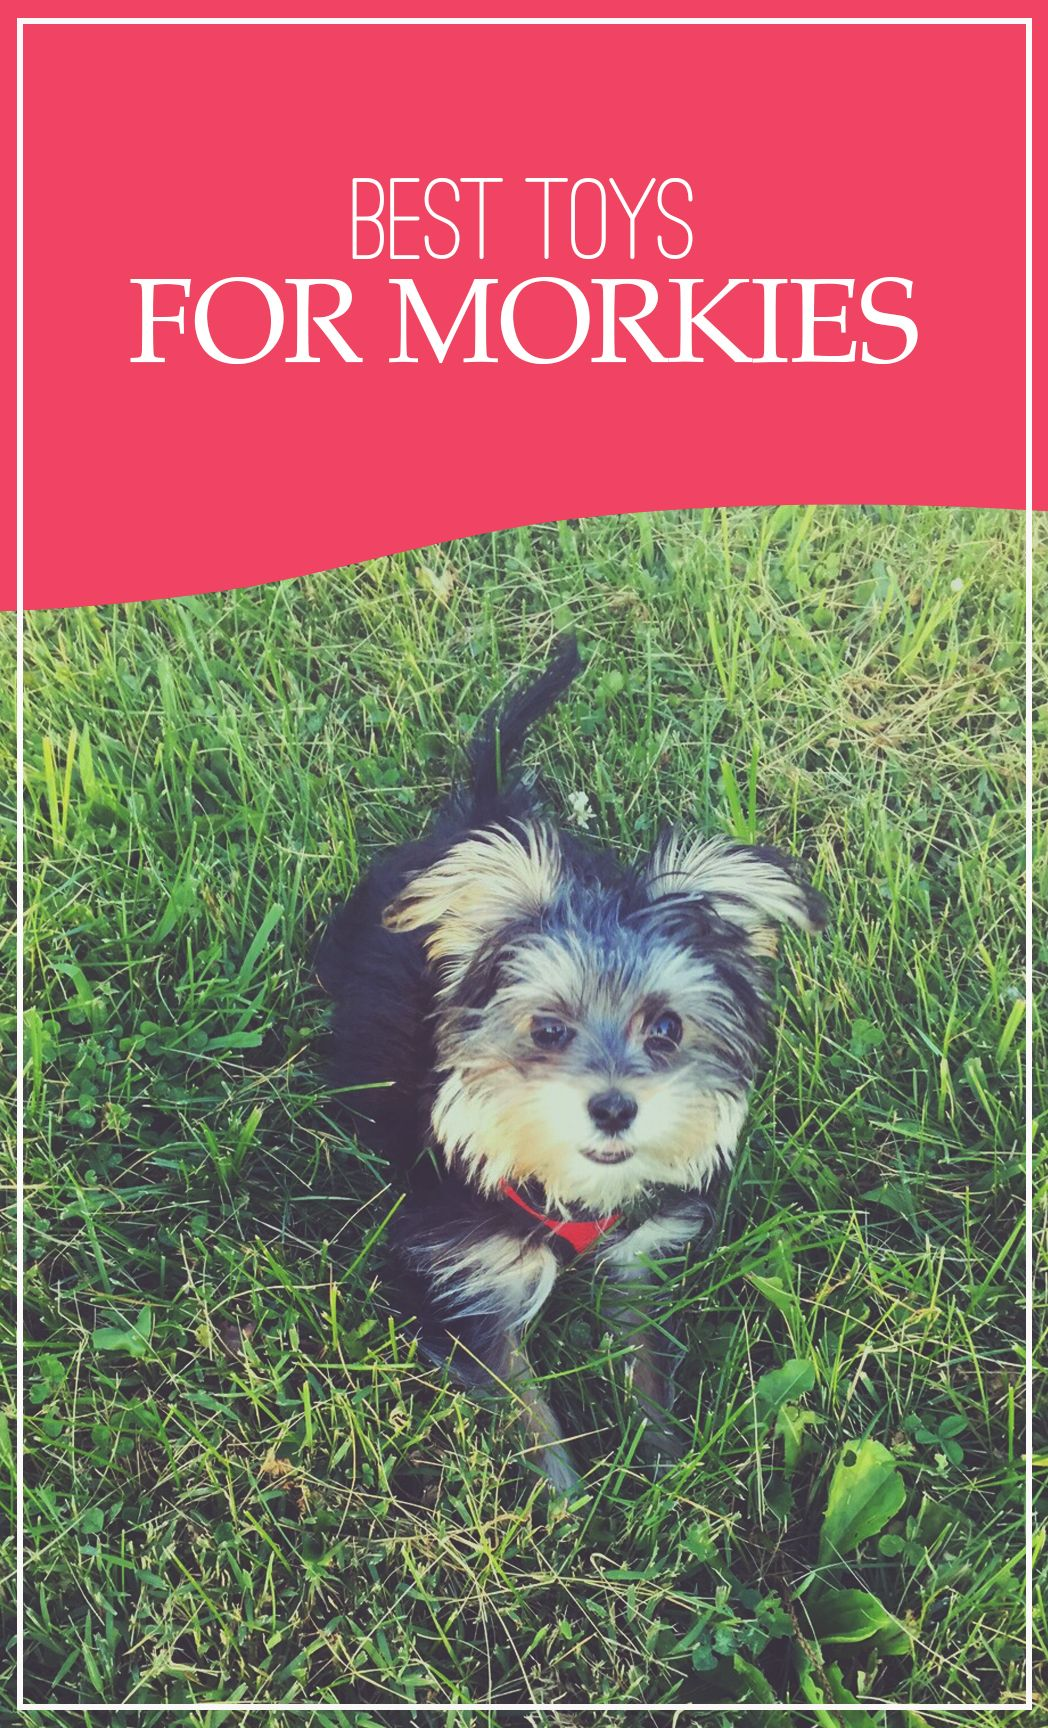 Best Toys For Morkie Dogs Morkie Puppies Morkie Morkie Dogs